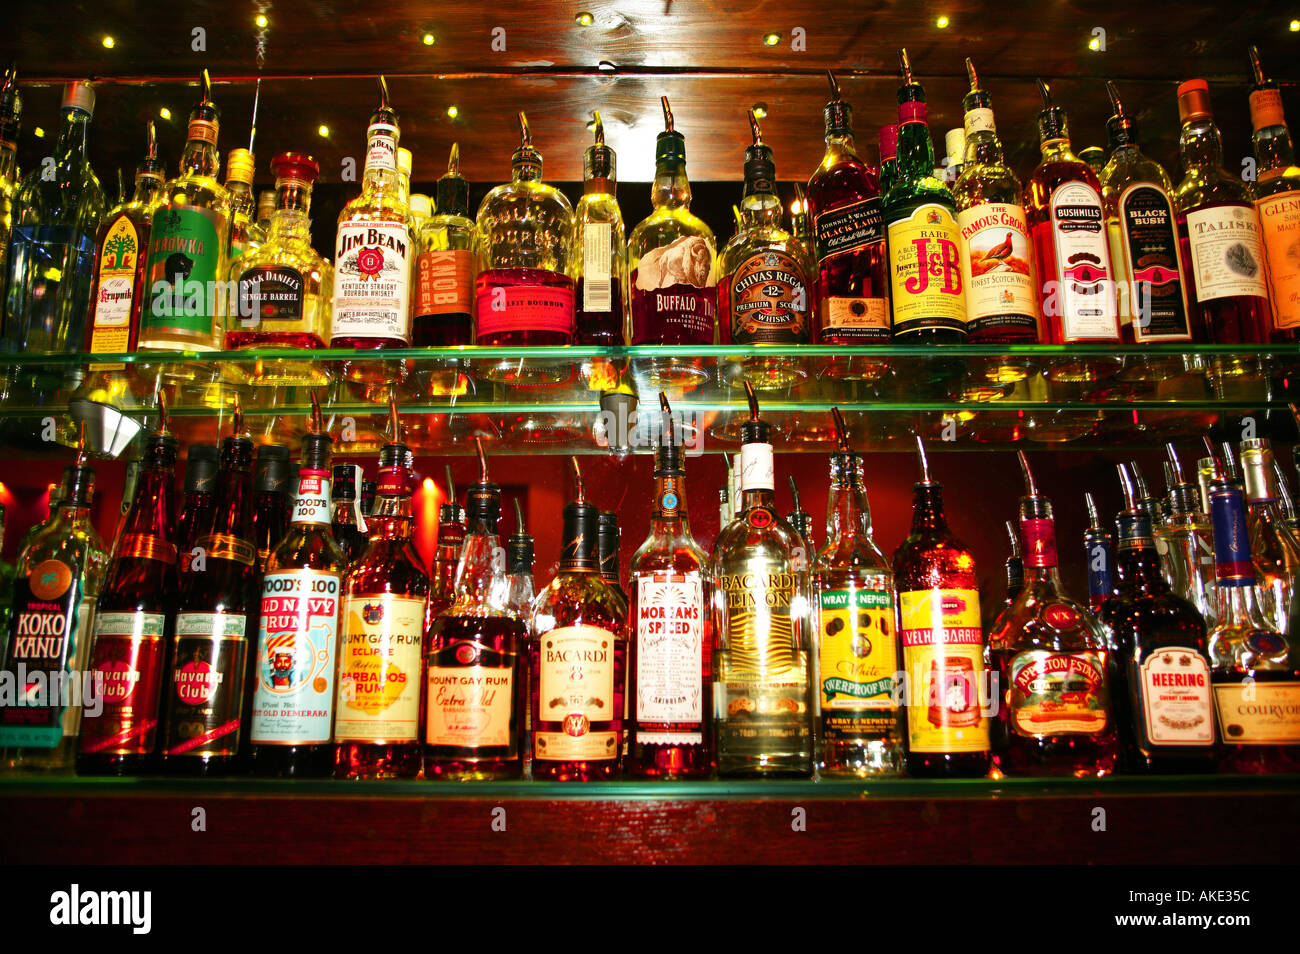 Back Bar Bottles Stock Photo Royalty Free Image 1303387